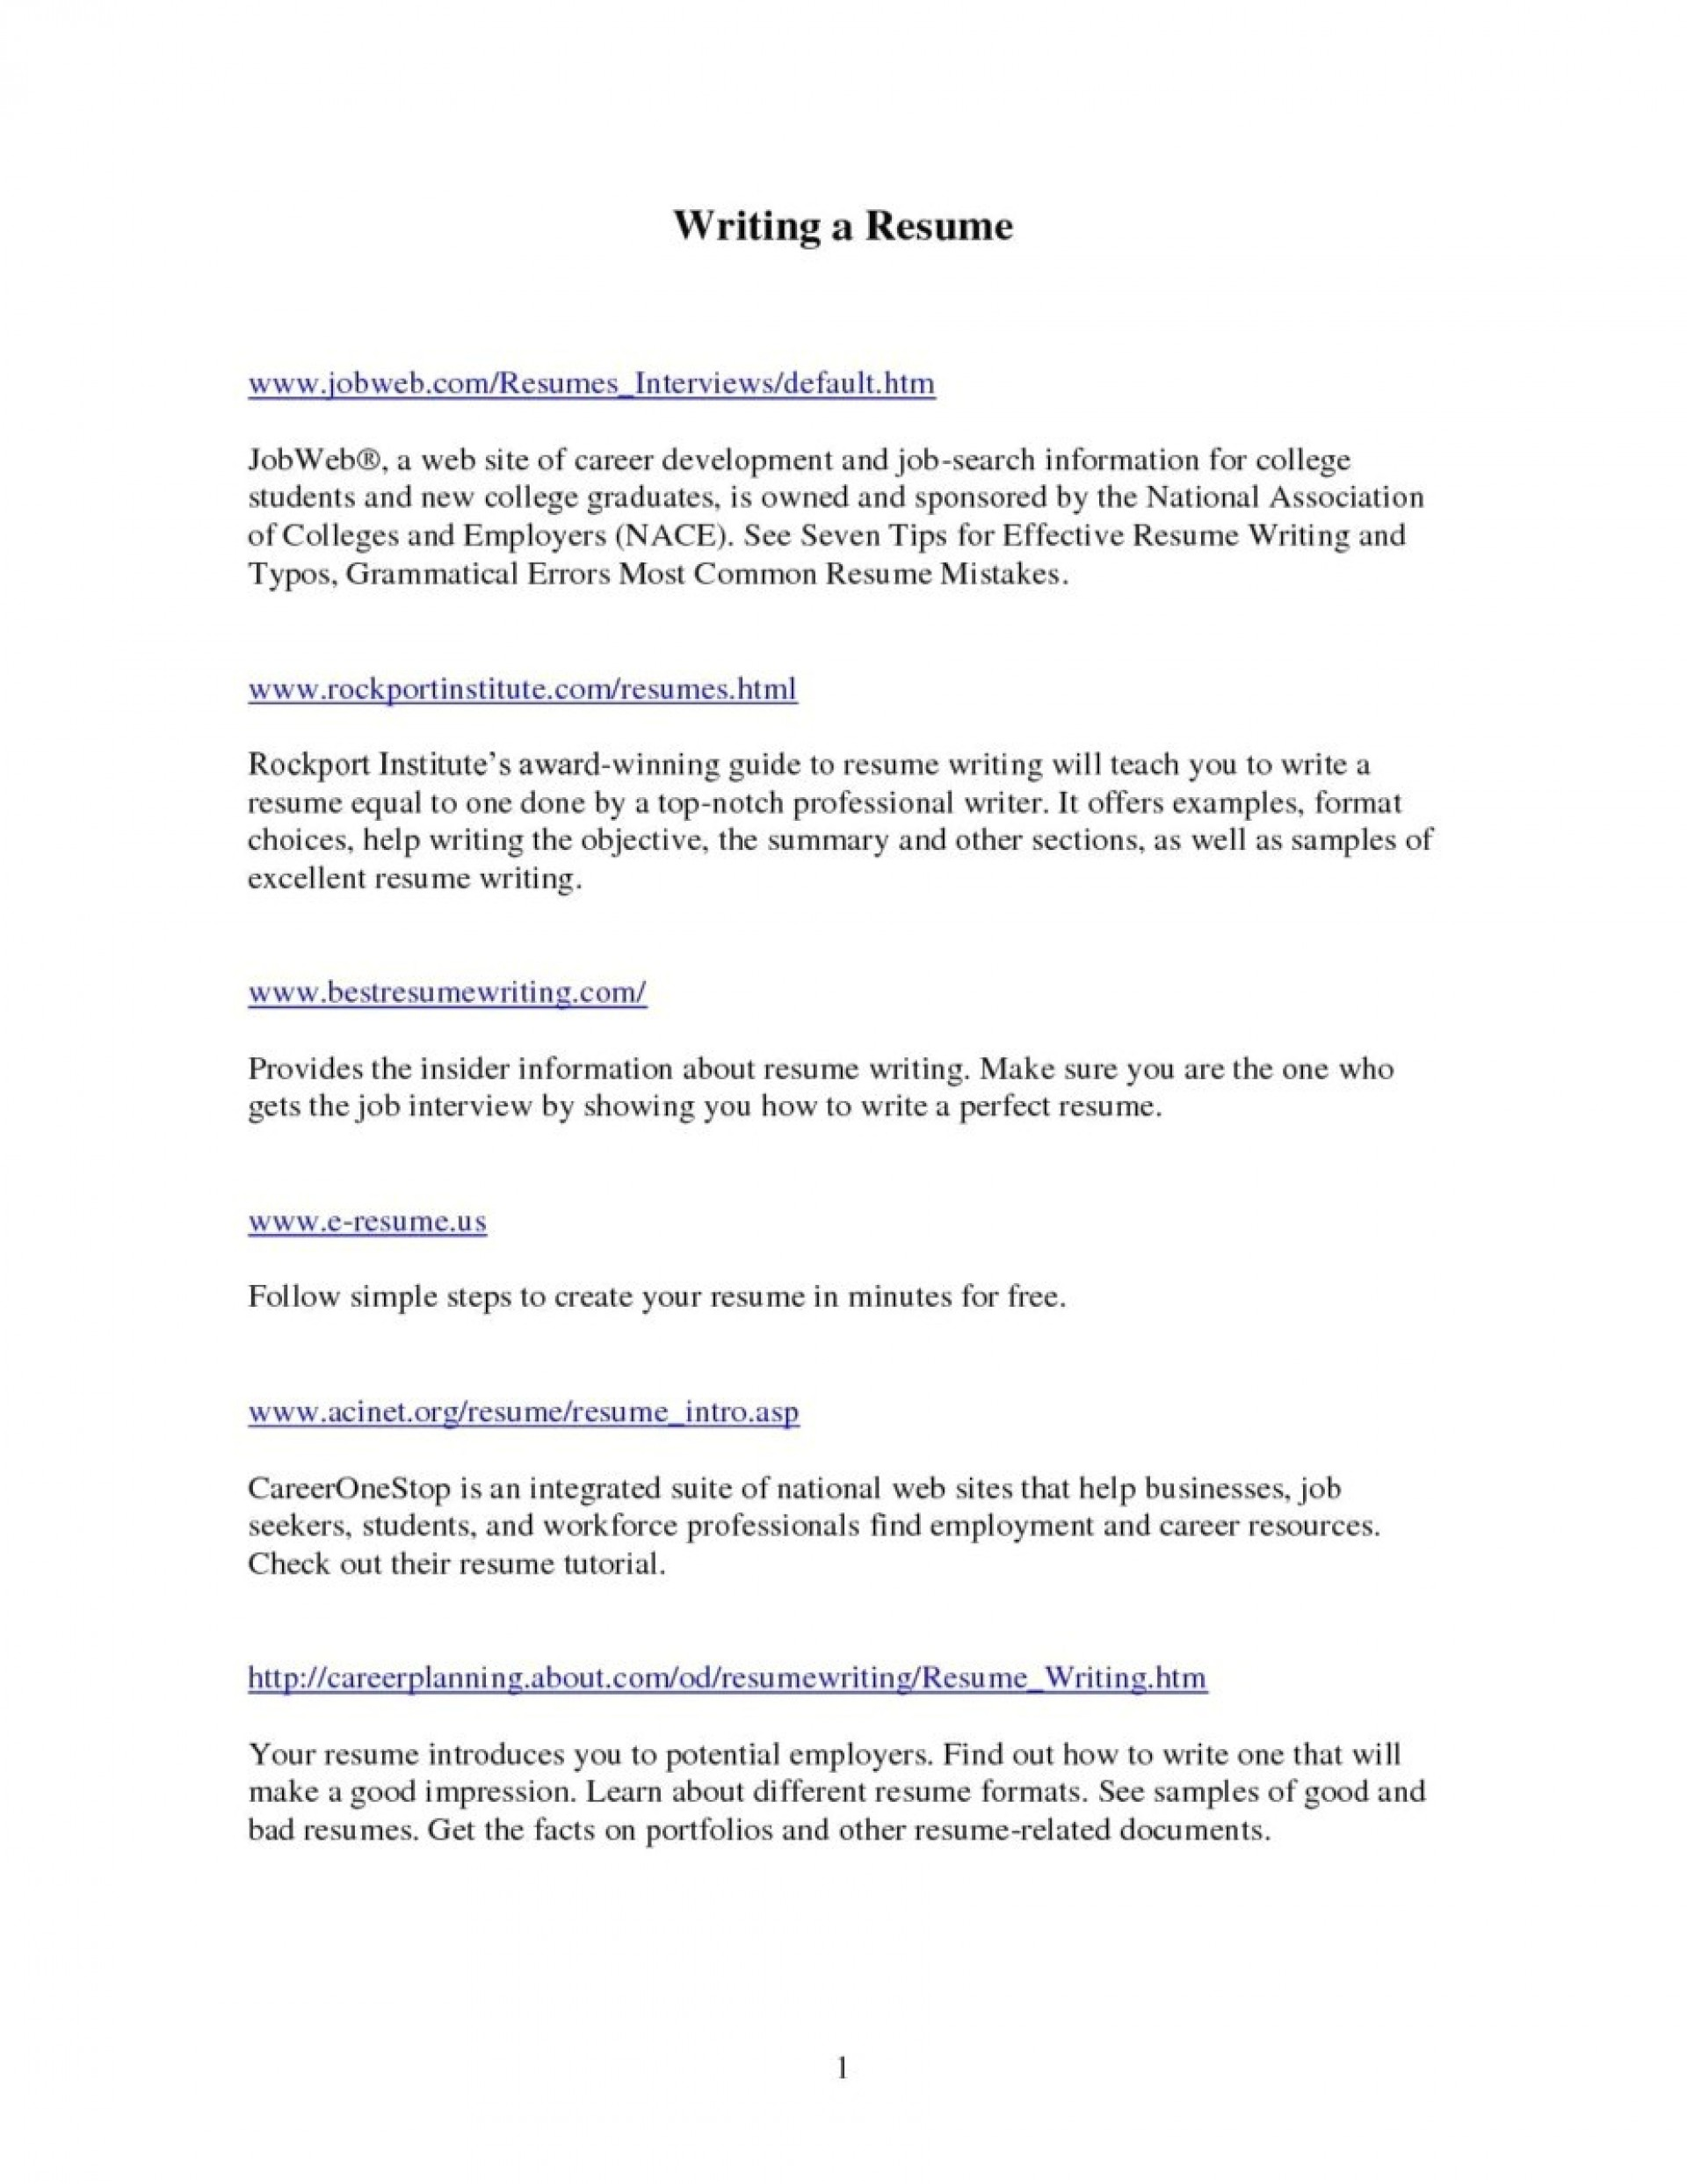 009 Research Paper Resume Writing Service Reviews Format Best Writers Inspirational Help Professional Of Free Services Essay Remarkable Outline Sample Apa Argumentative Template 1920